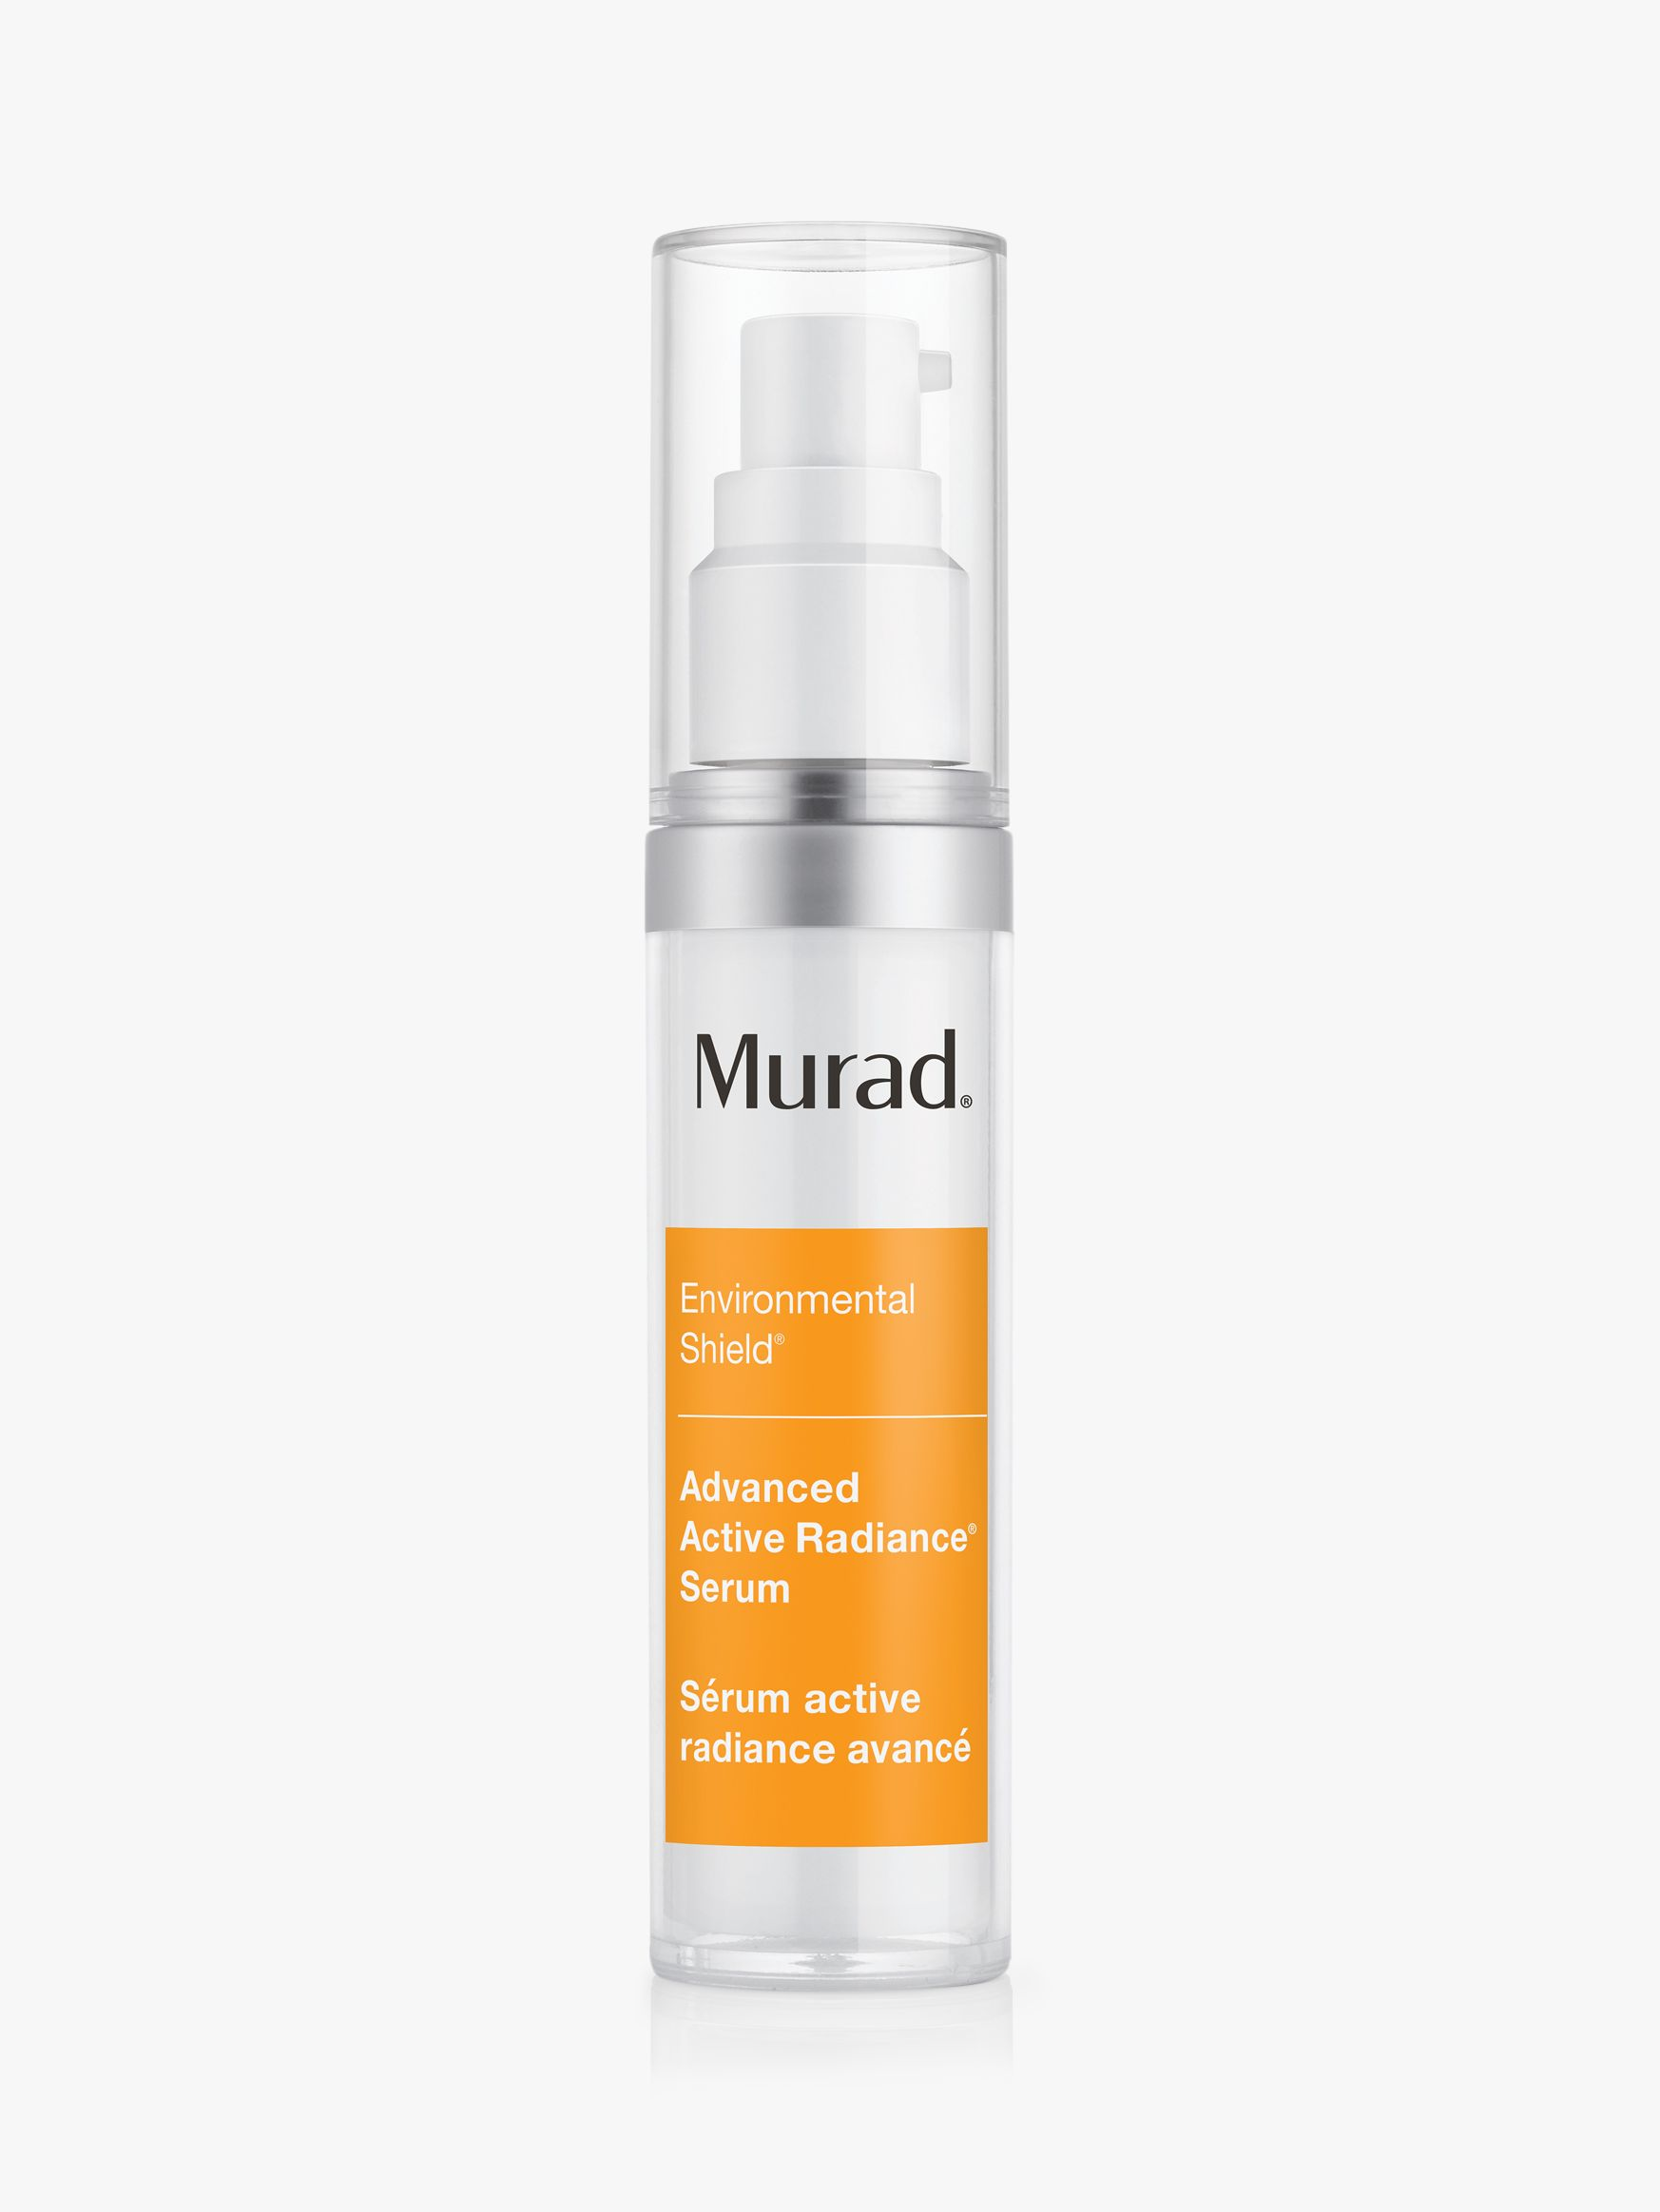 Murad Murad Advanced Active Radiance Serum, 30ml